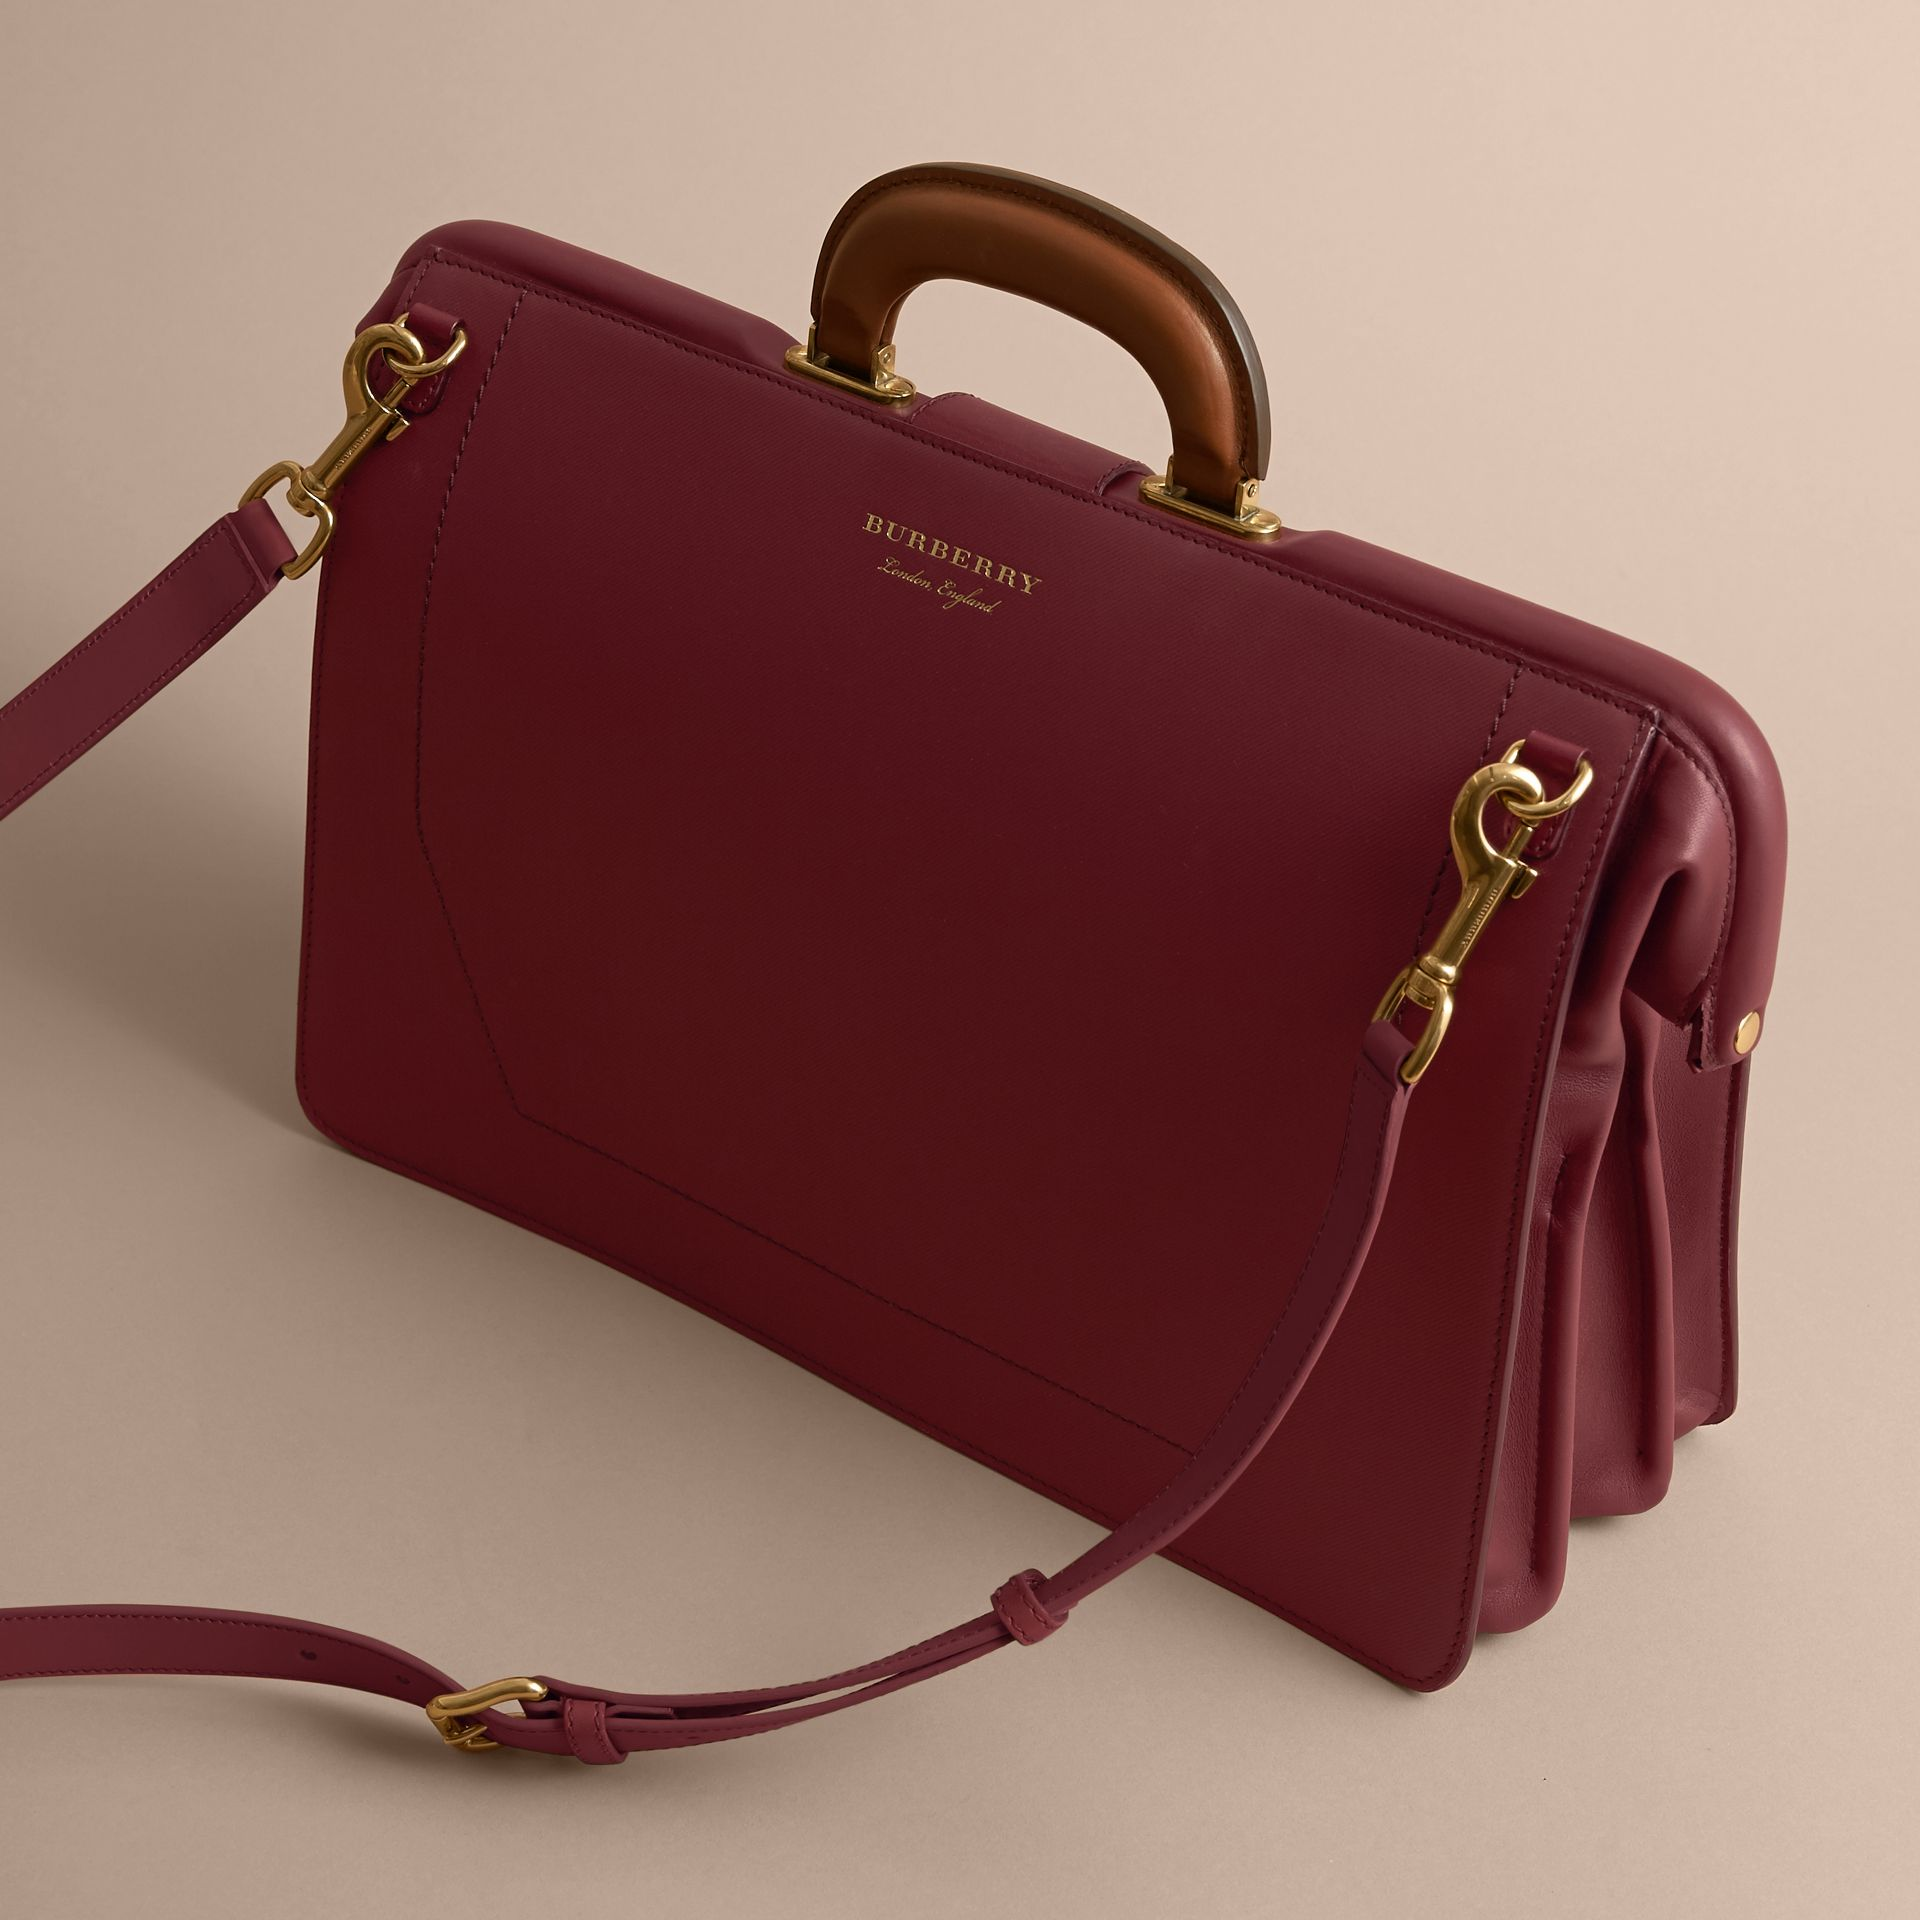 Sac docteur DK88 (Rouge Antique) - Homme | Burberry - photo de la galerie 4